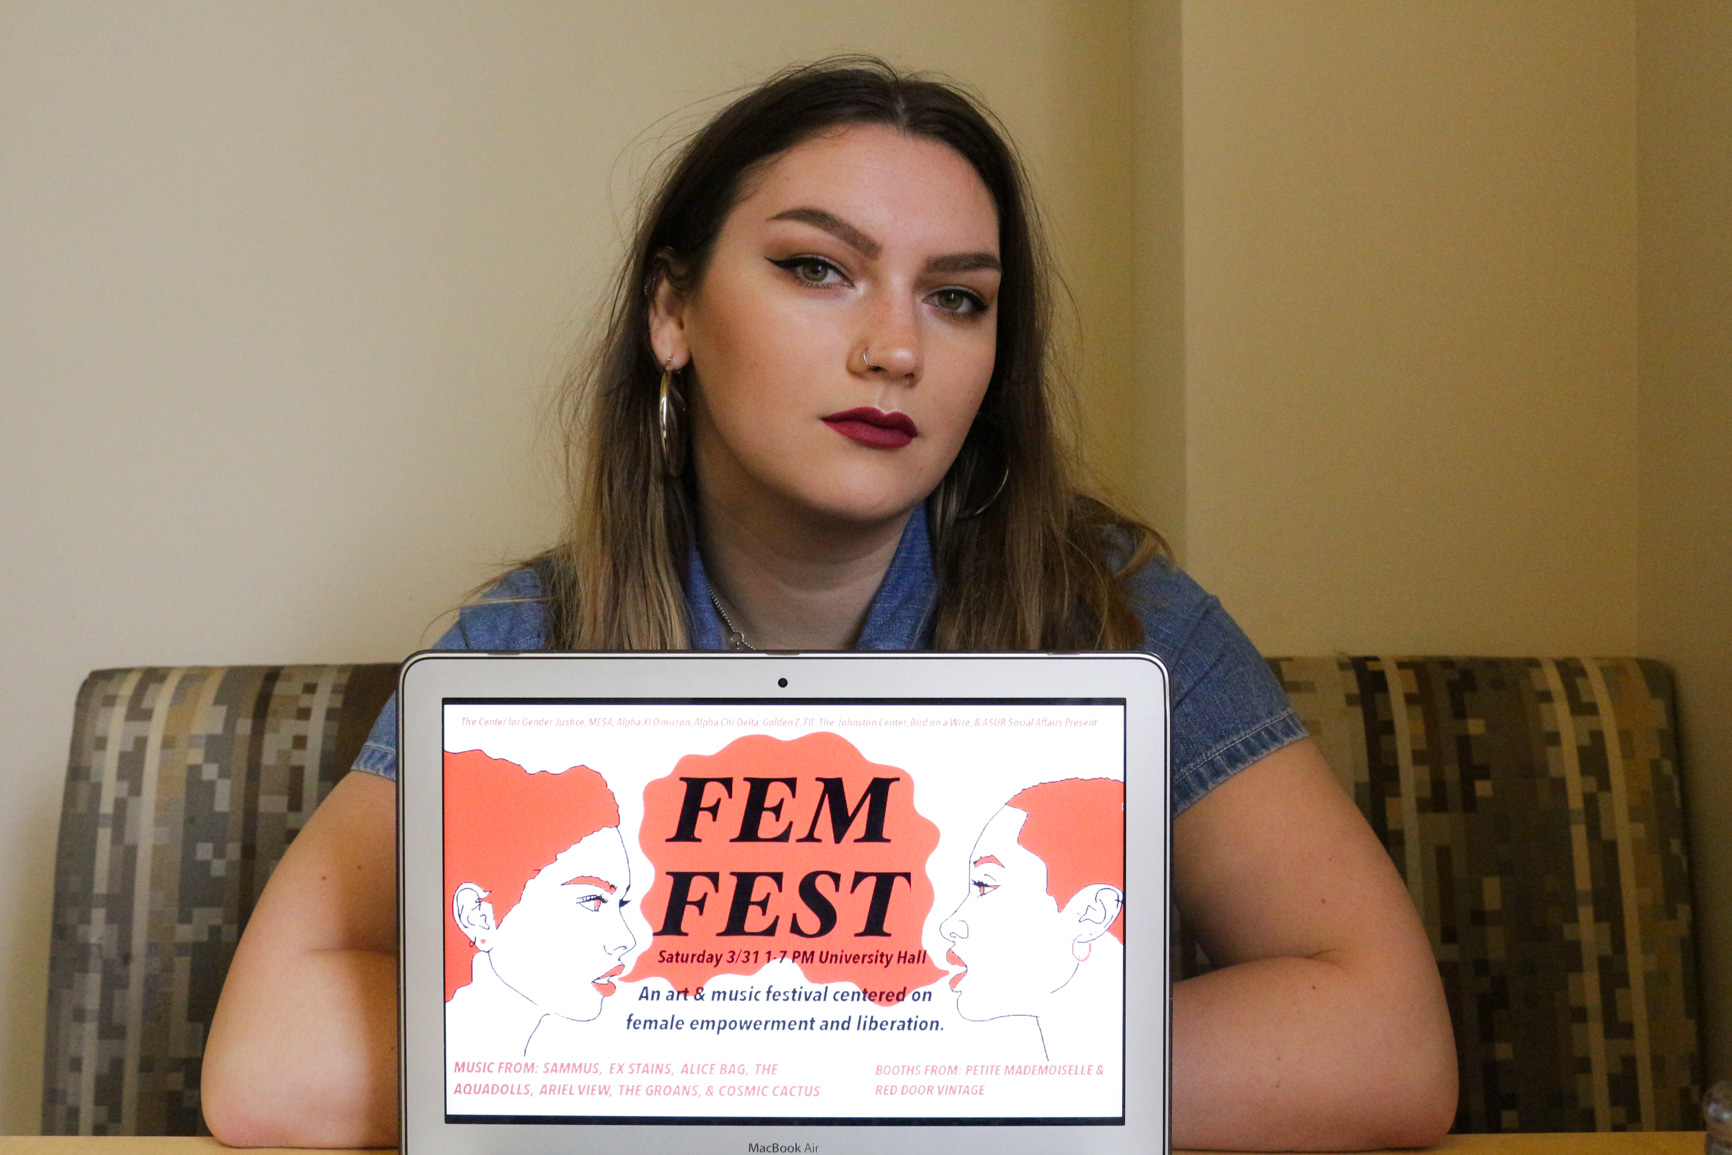 AN INTERVIEW WITH THE CREATOR OF FEM FEST, JULIE DONOHUE